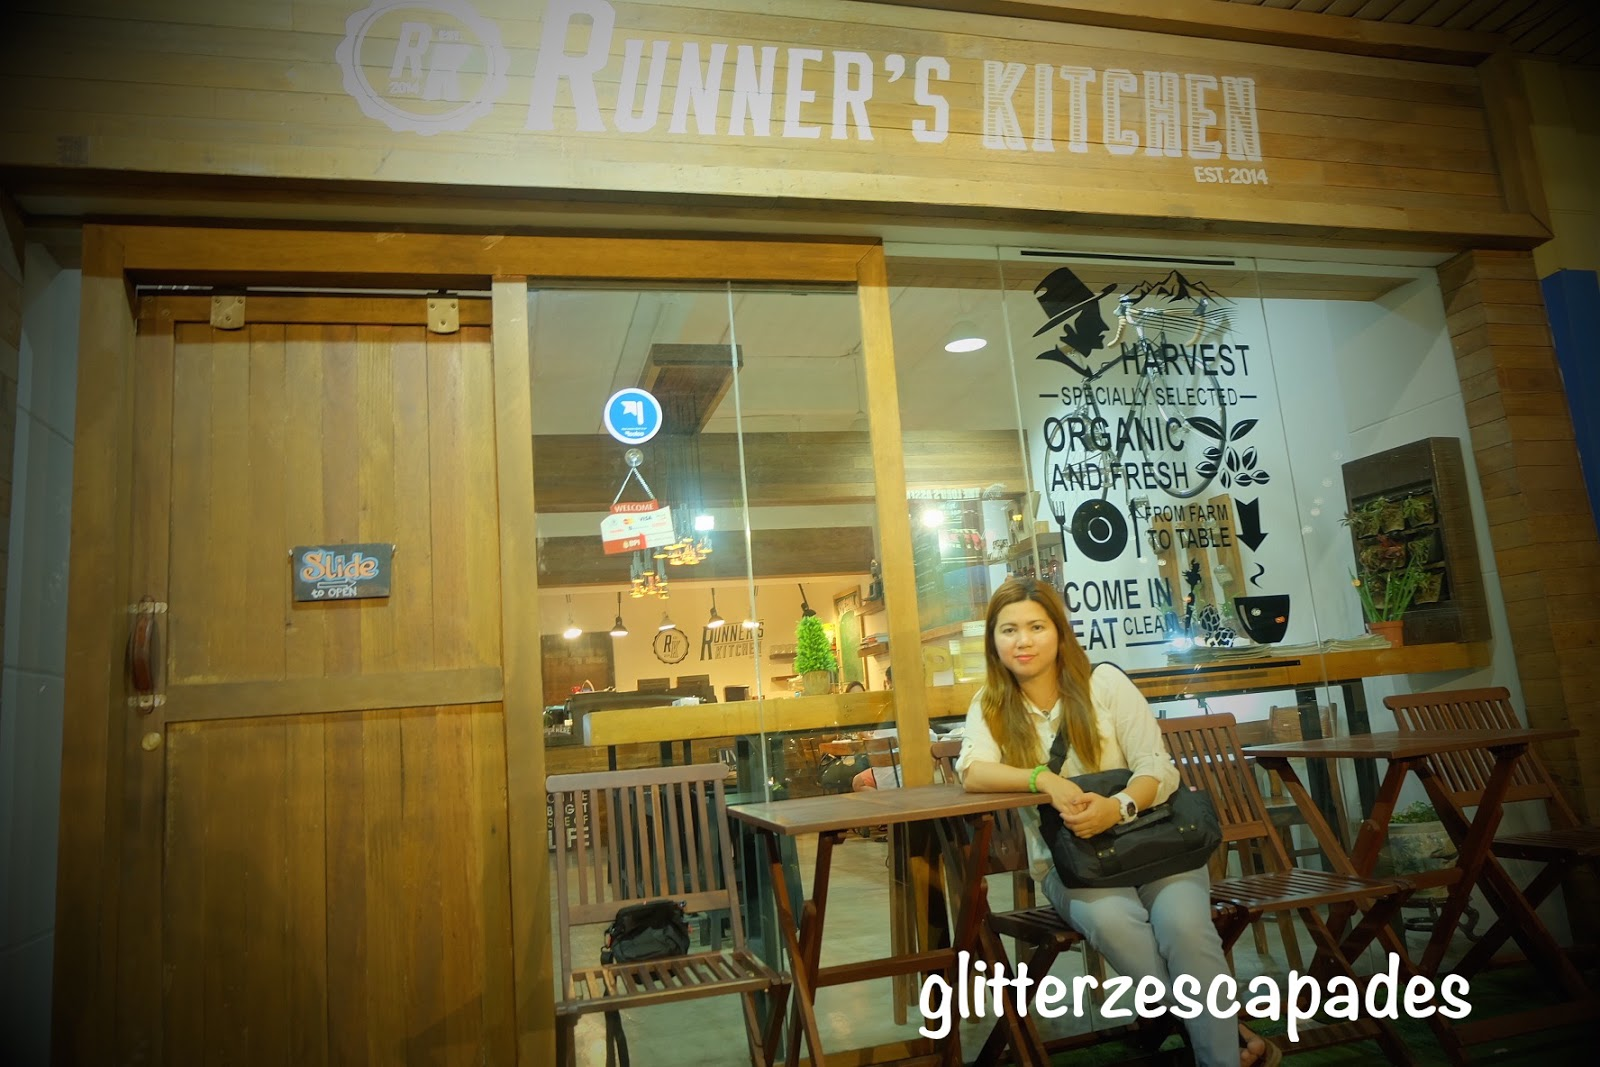 runners kitchen | glitterz escapades